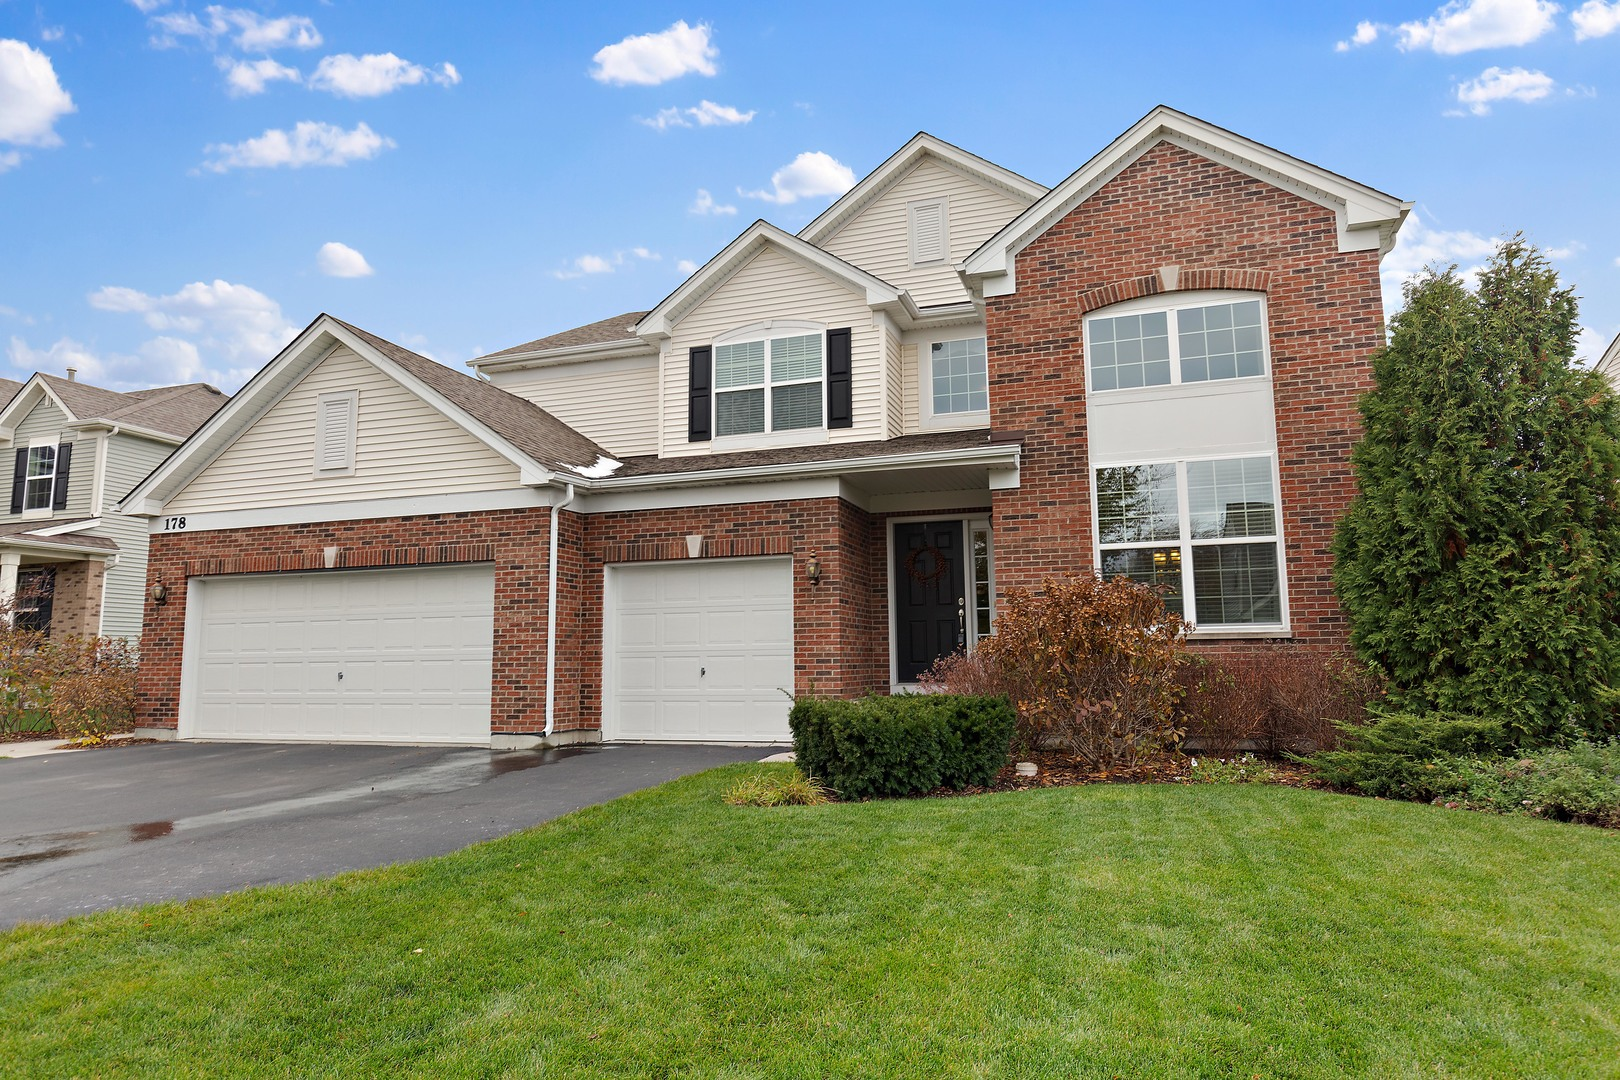 Photo for 178 Regal Drive, Crystal Lake, IL 60014 (MLS # 10566786)